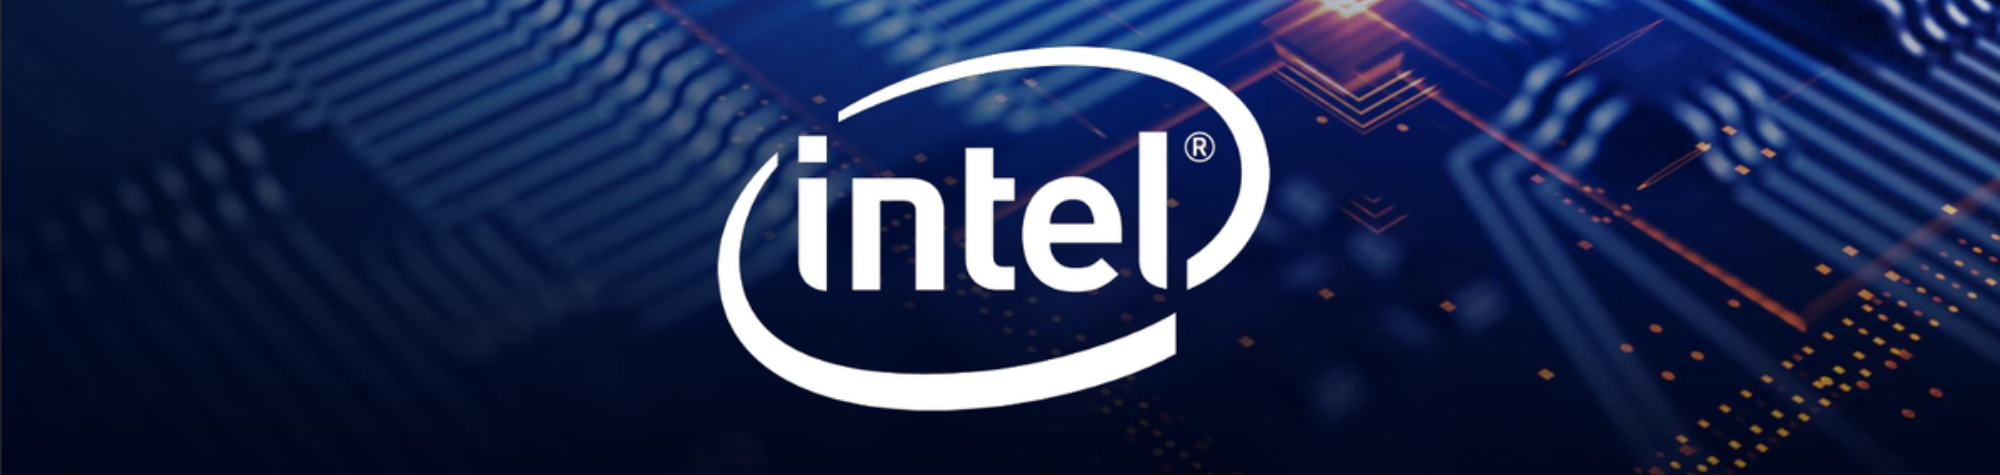 Intel's 7nm isn't arriving anytime soon